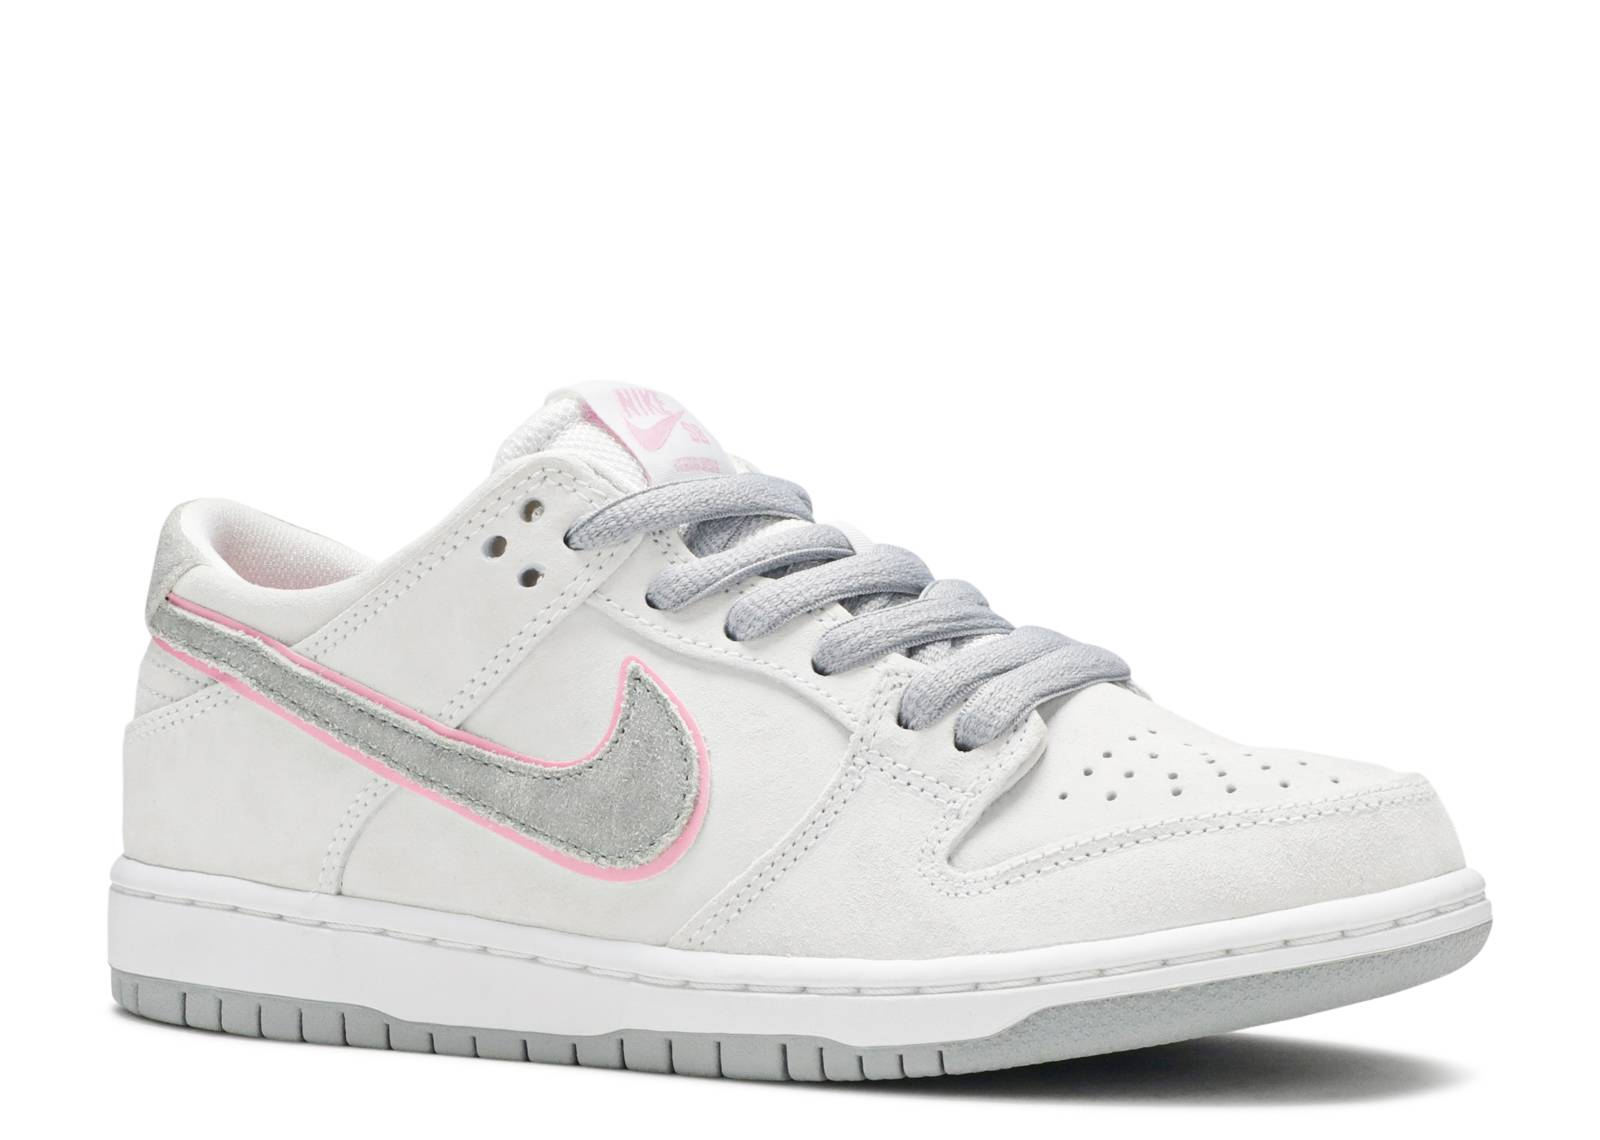 08f26f7c121 Nike Sb Dunk Low Pro Iw - Nike - 895969 160 - white perfect pink-flt silver